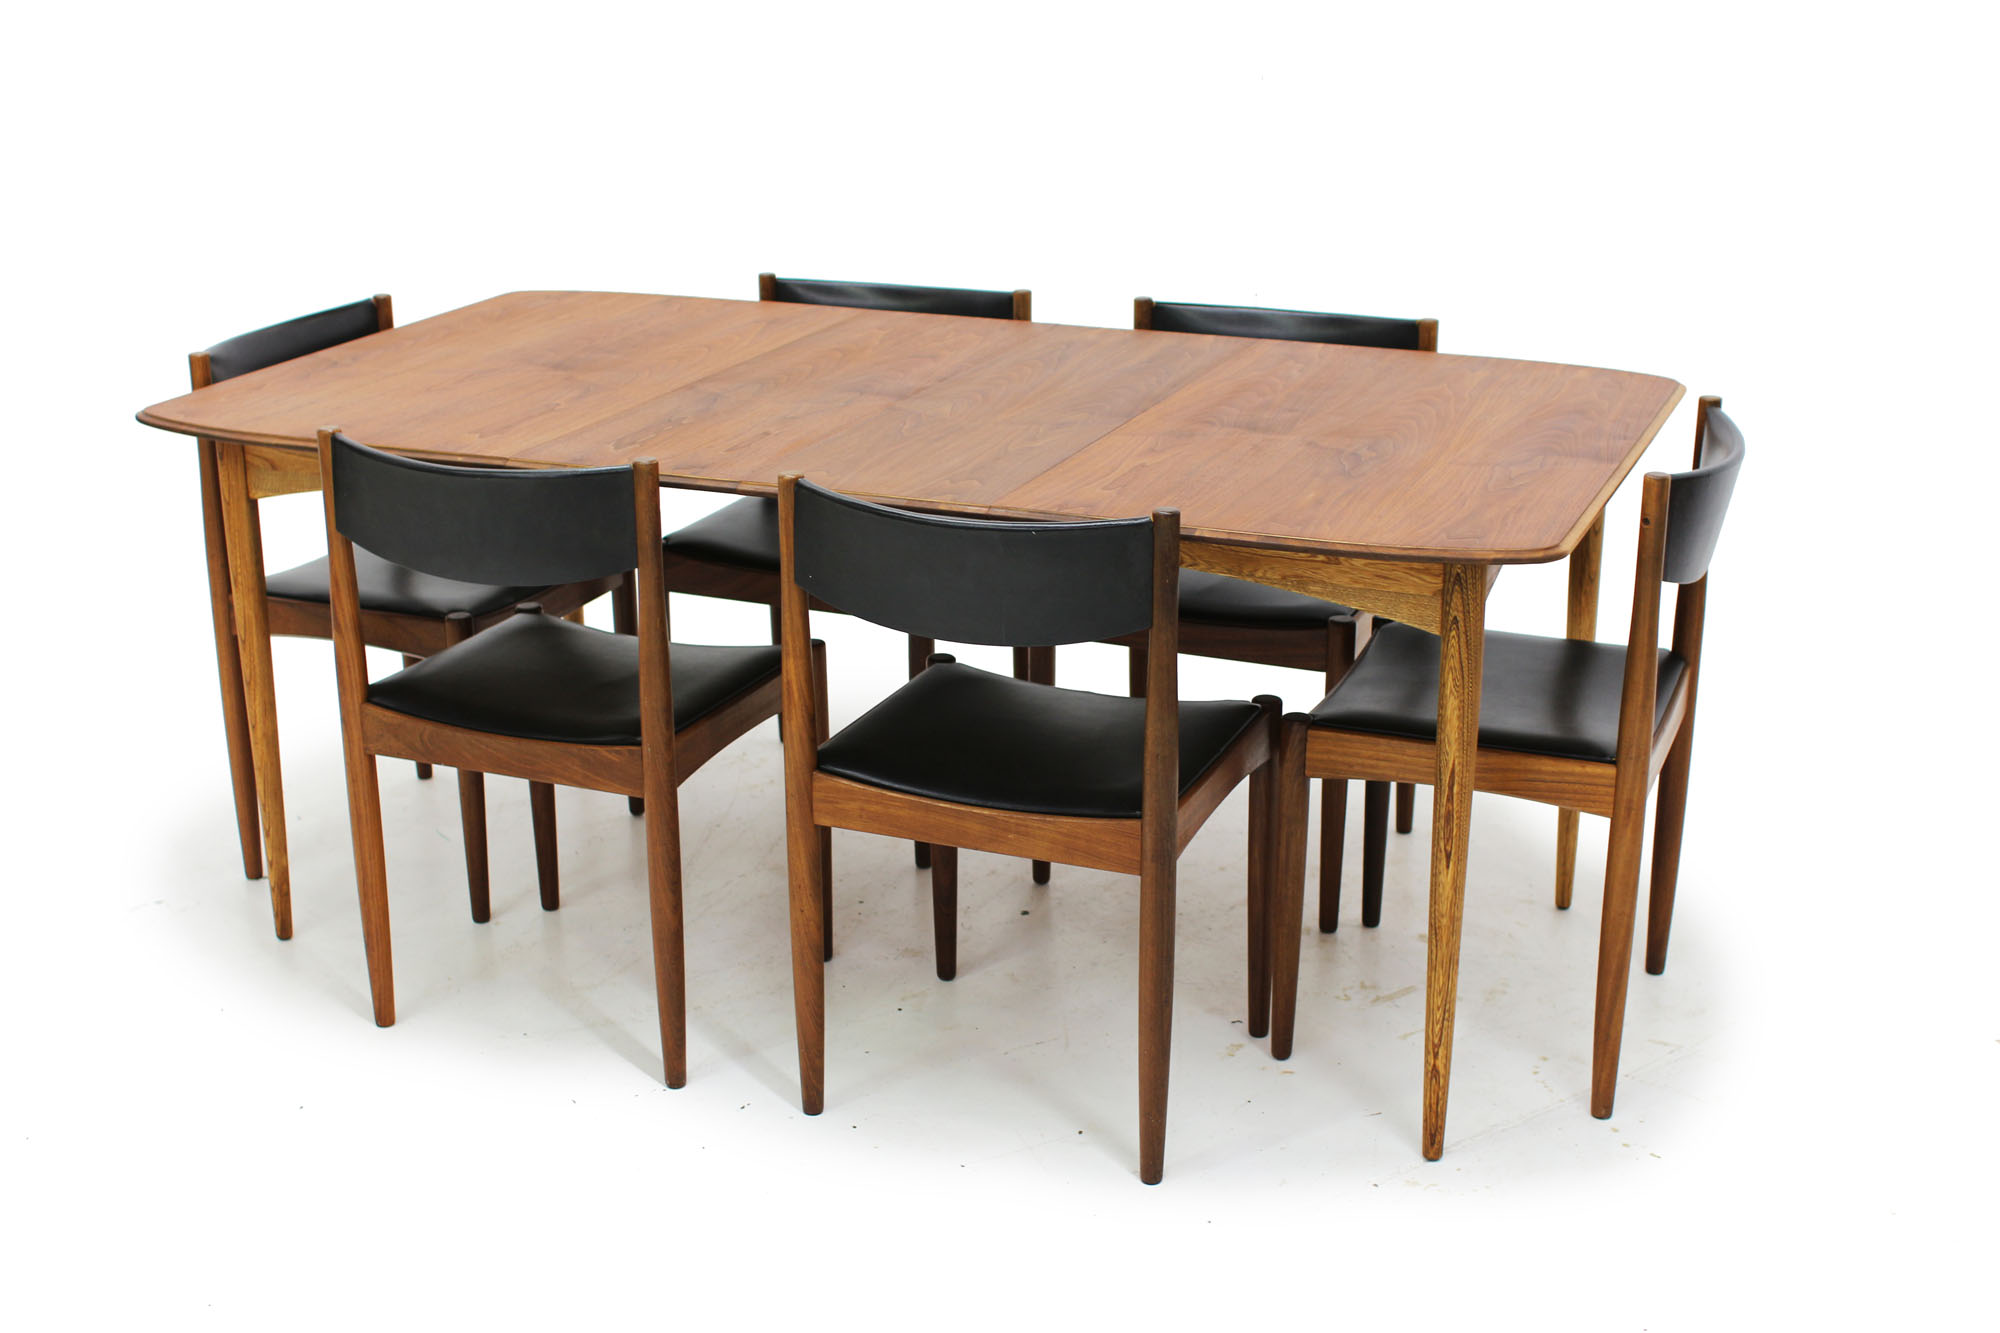 Set of 6 Mid Century Teak Dining Chairs designed by Poul Volther Made in Denmark (3).jpg